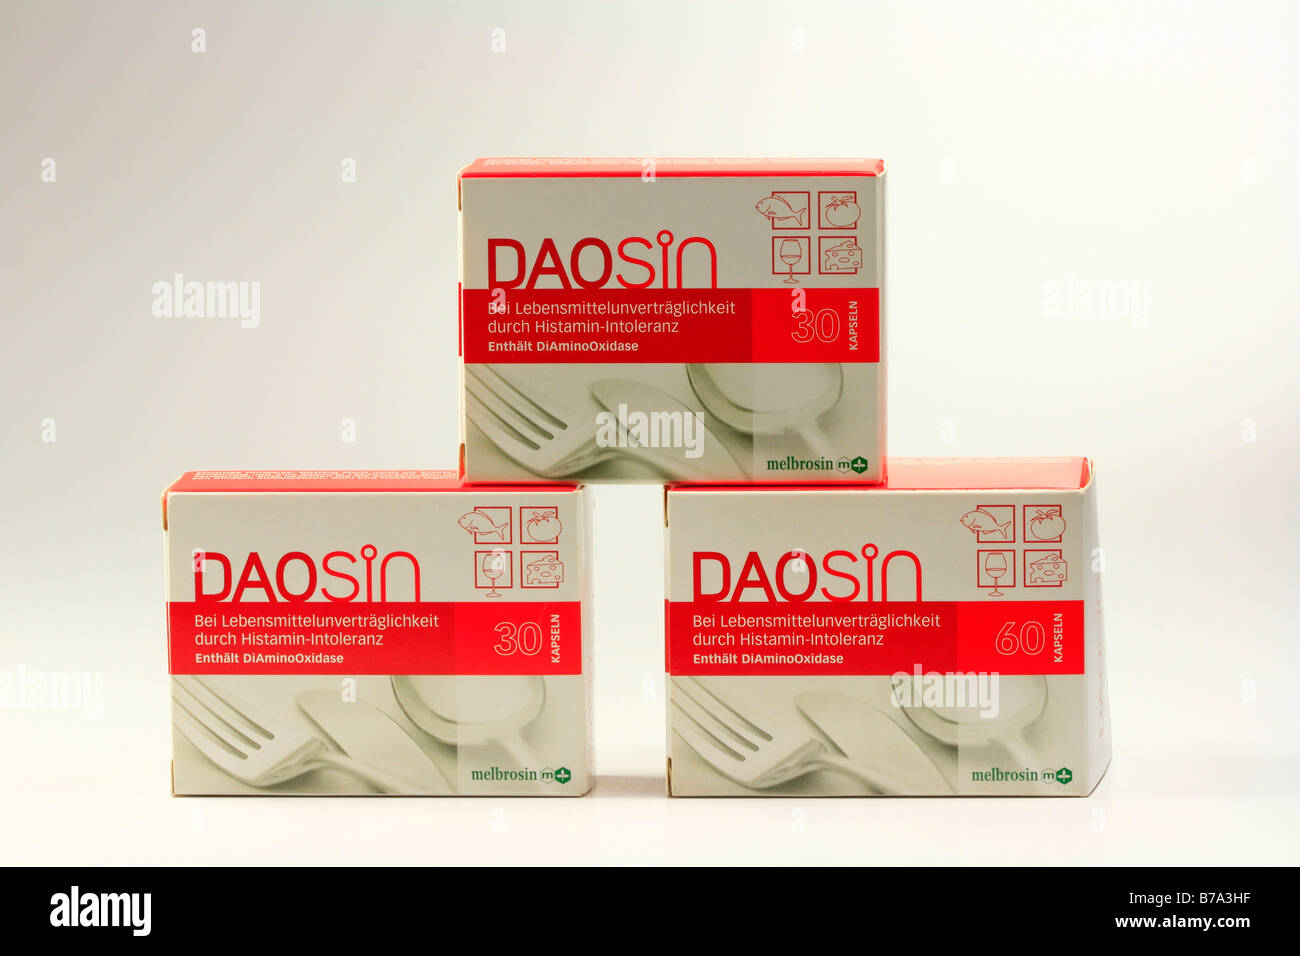 Daosin, dietary supplement, medicinal product for use with histamine intolerance, contains the active substance Stock Photo